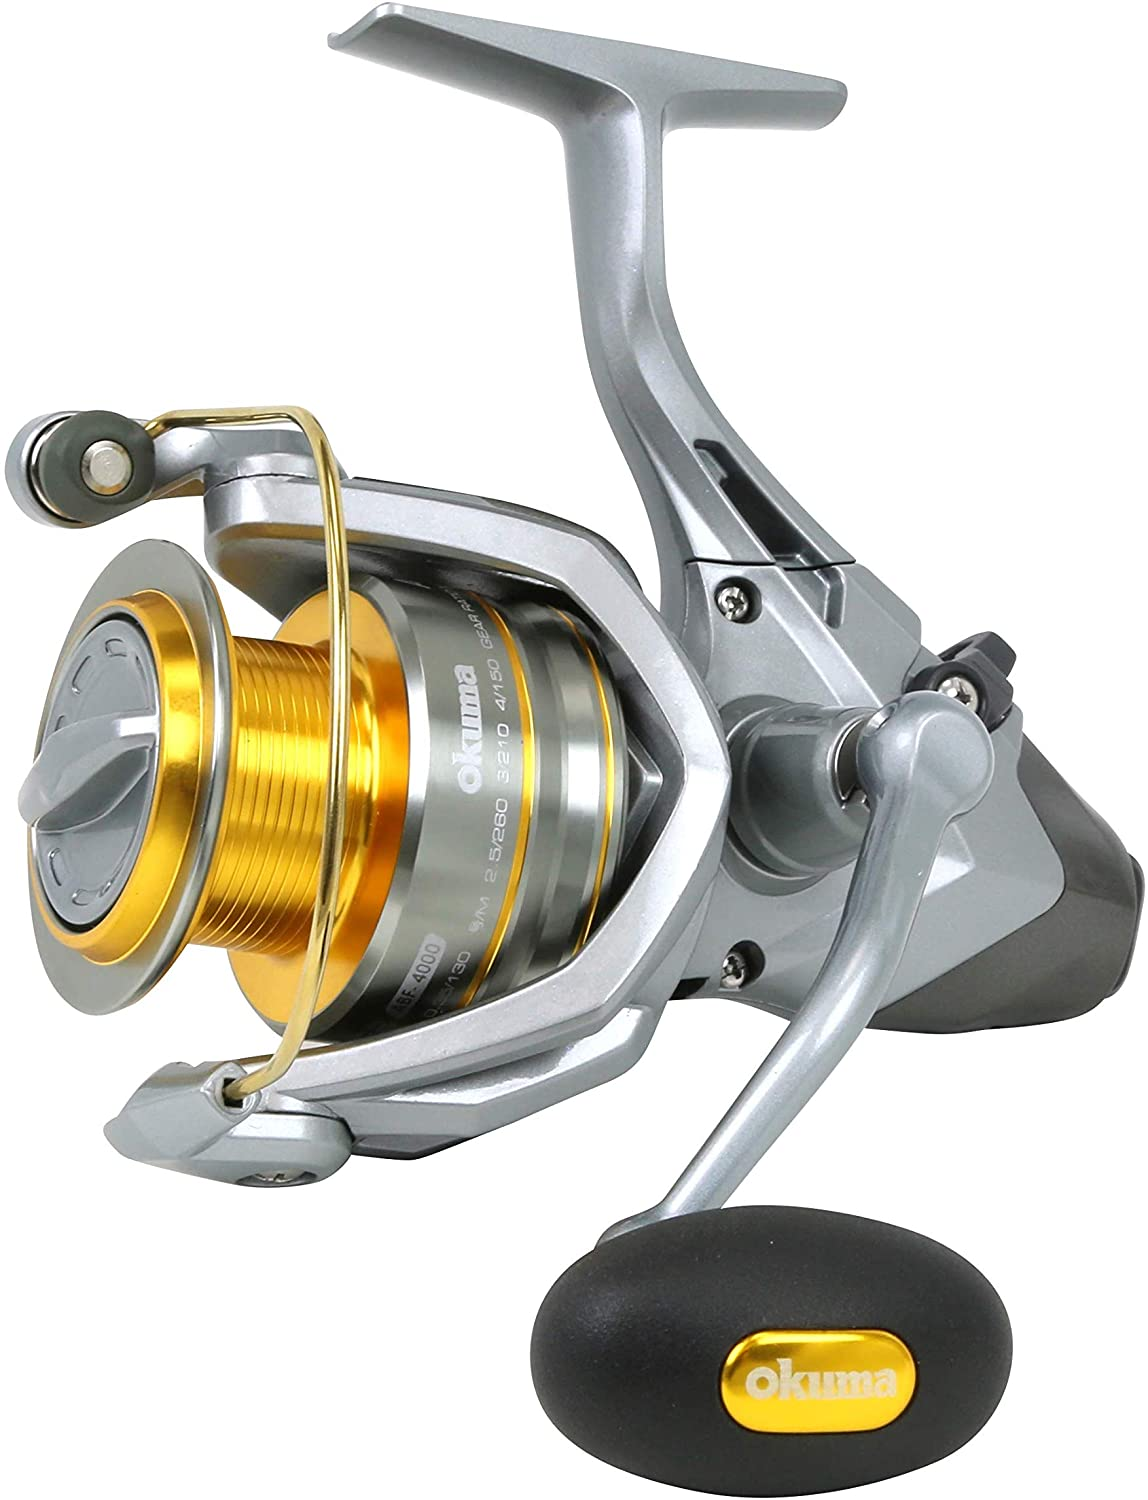 best open face fishing reels